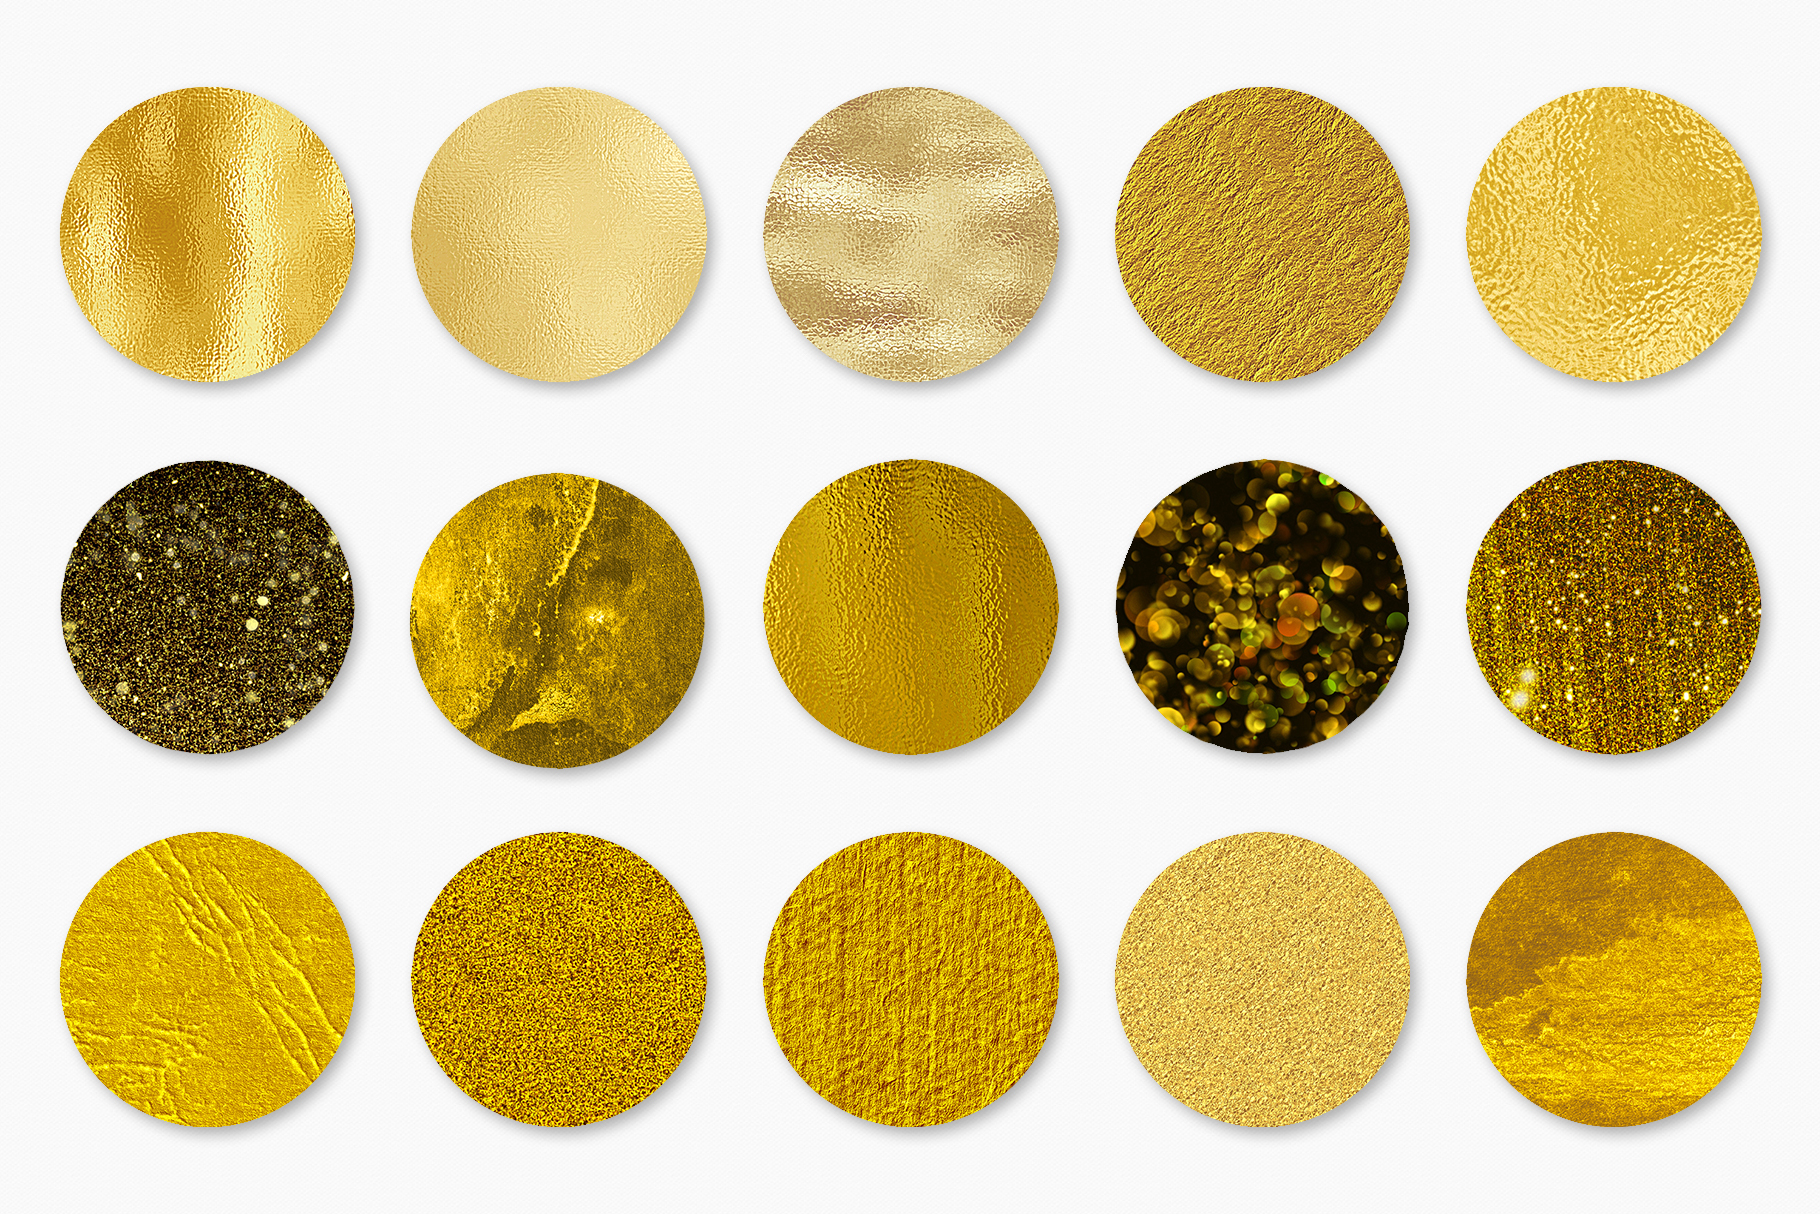 Gold Foil and Glitter Textures - Metallic Digital Papers example image 10